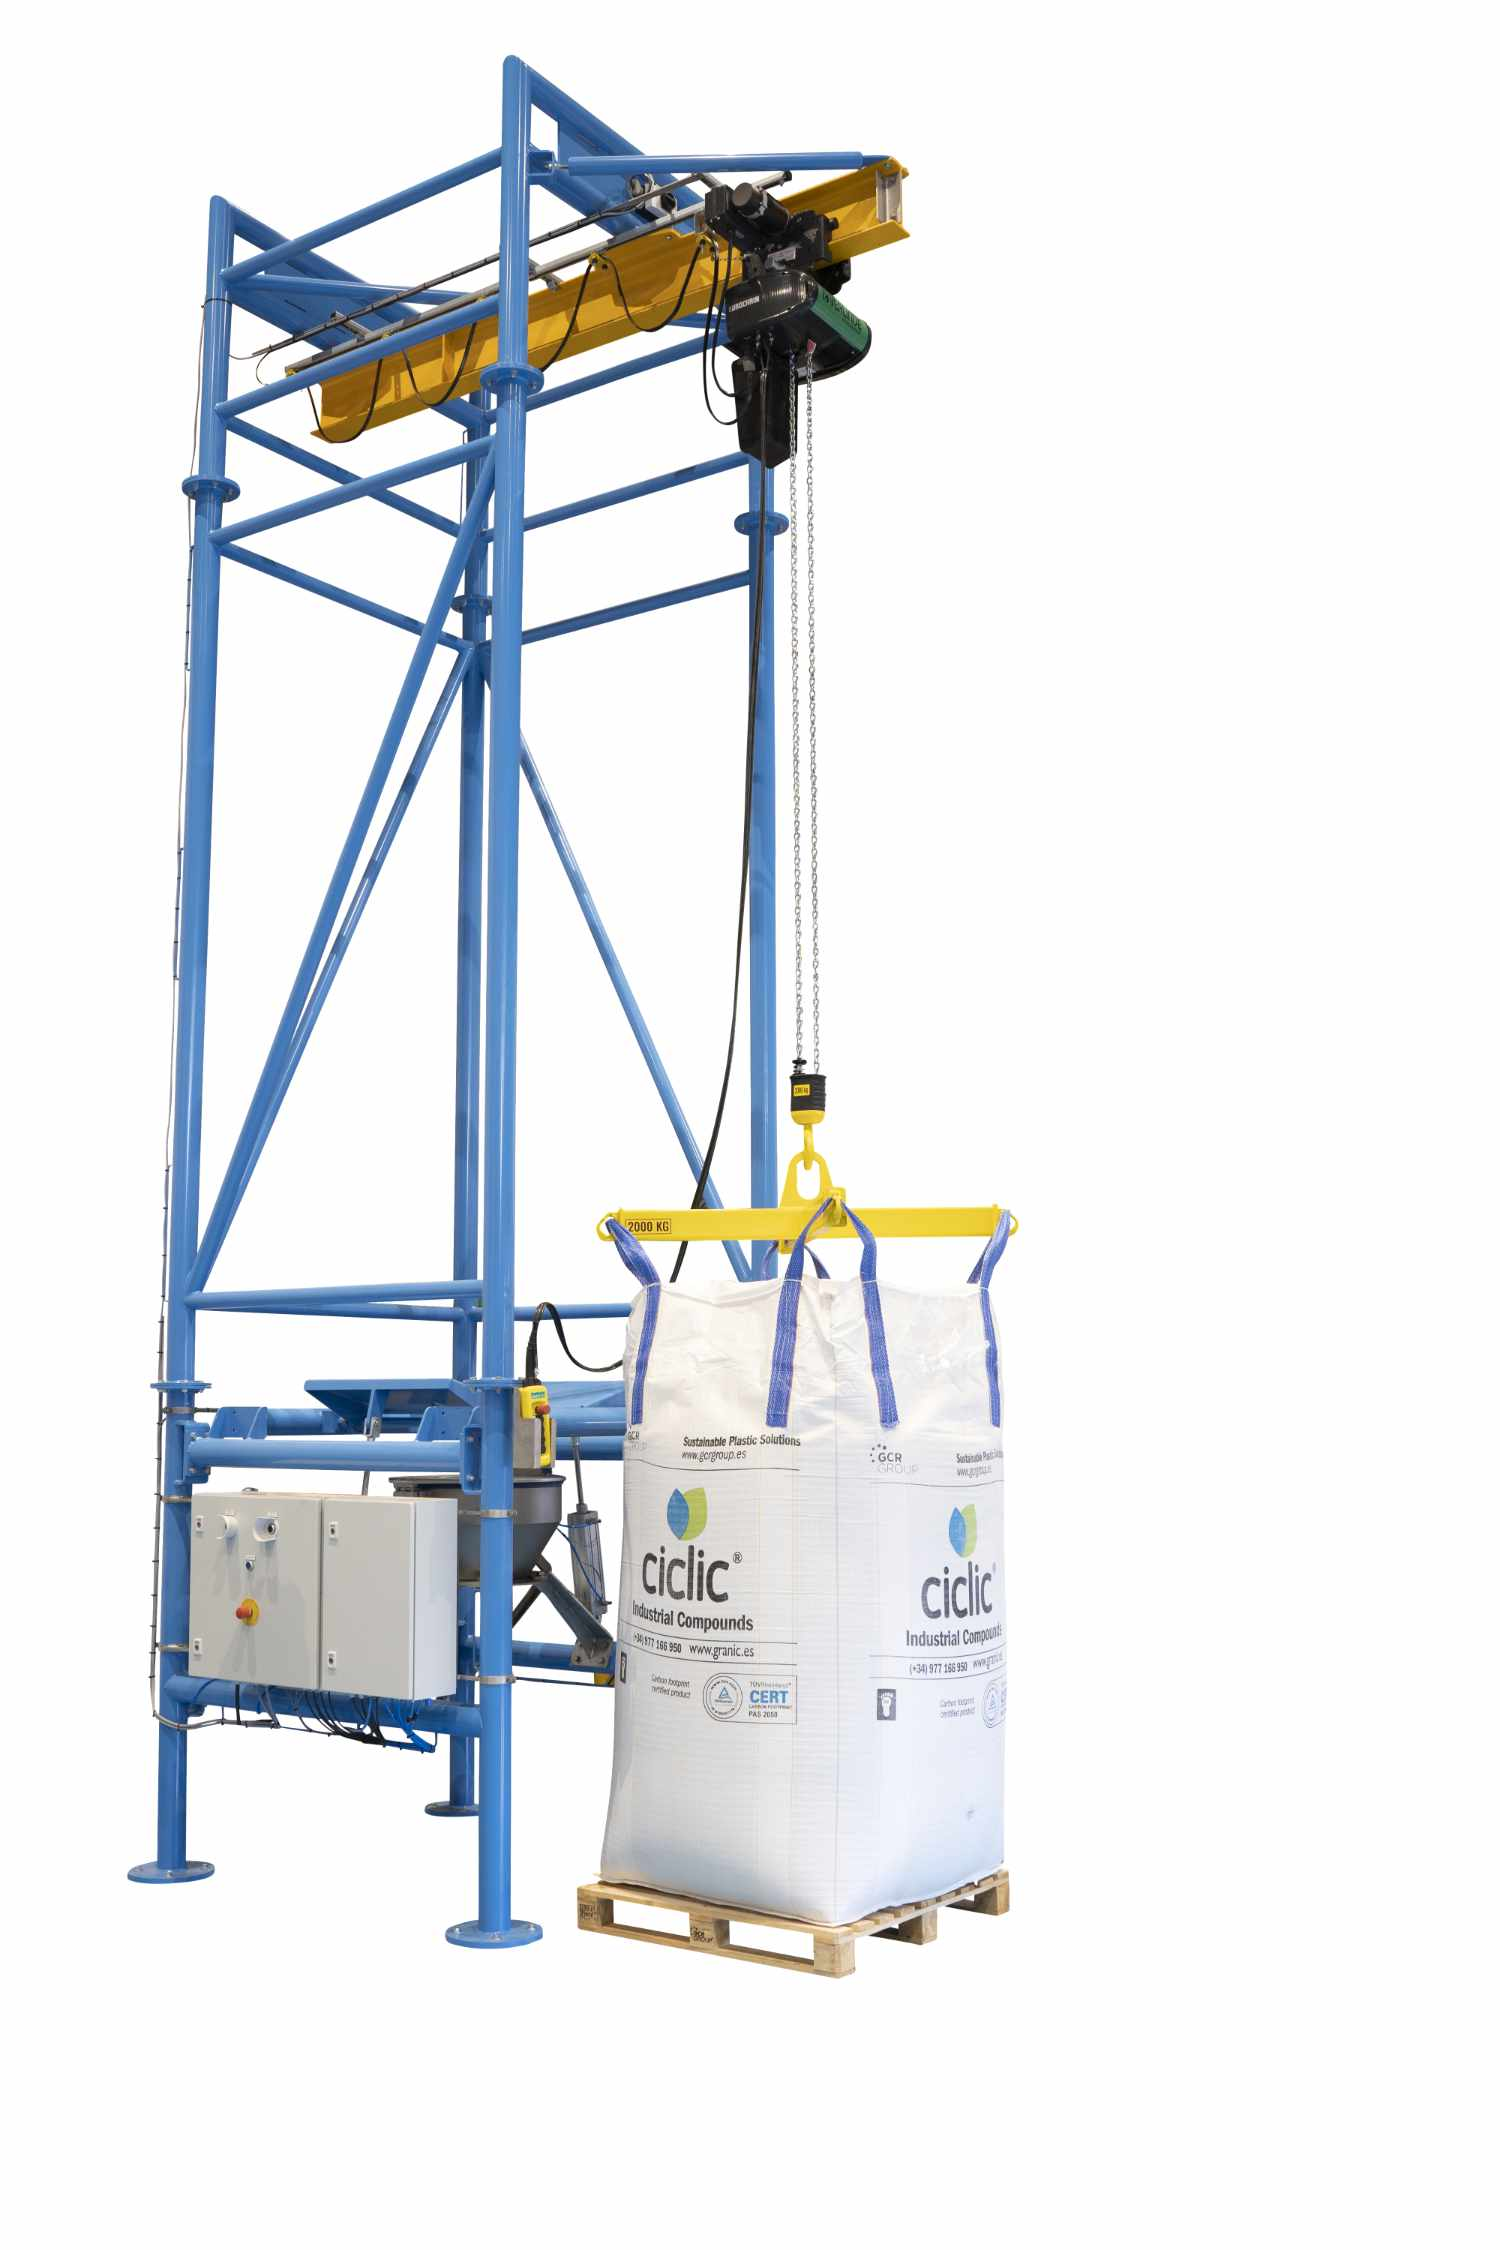 Van Beek's big bag unloading stations: just that little bit different (and here's why!)